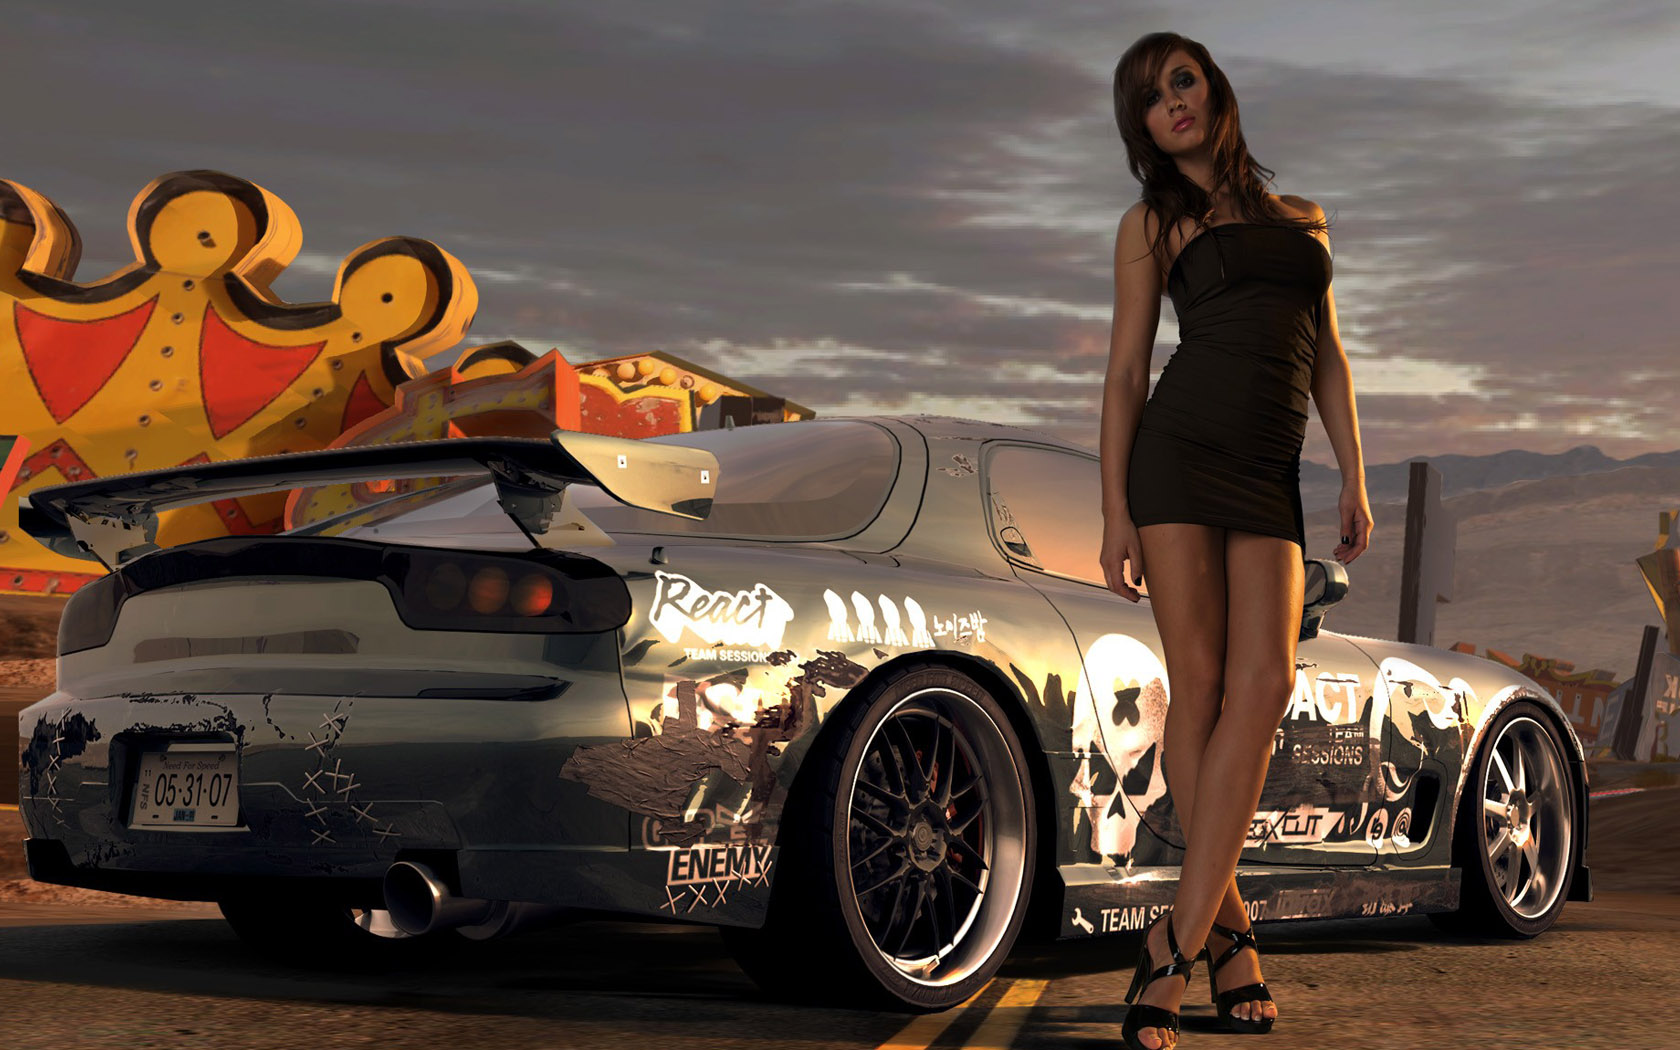 Wallpaper Cool Girl and a Cool Car Wallpaper World 1680x1050